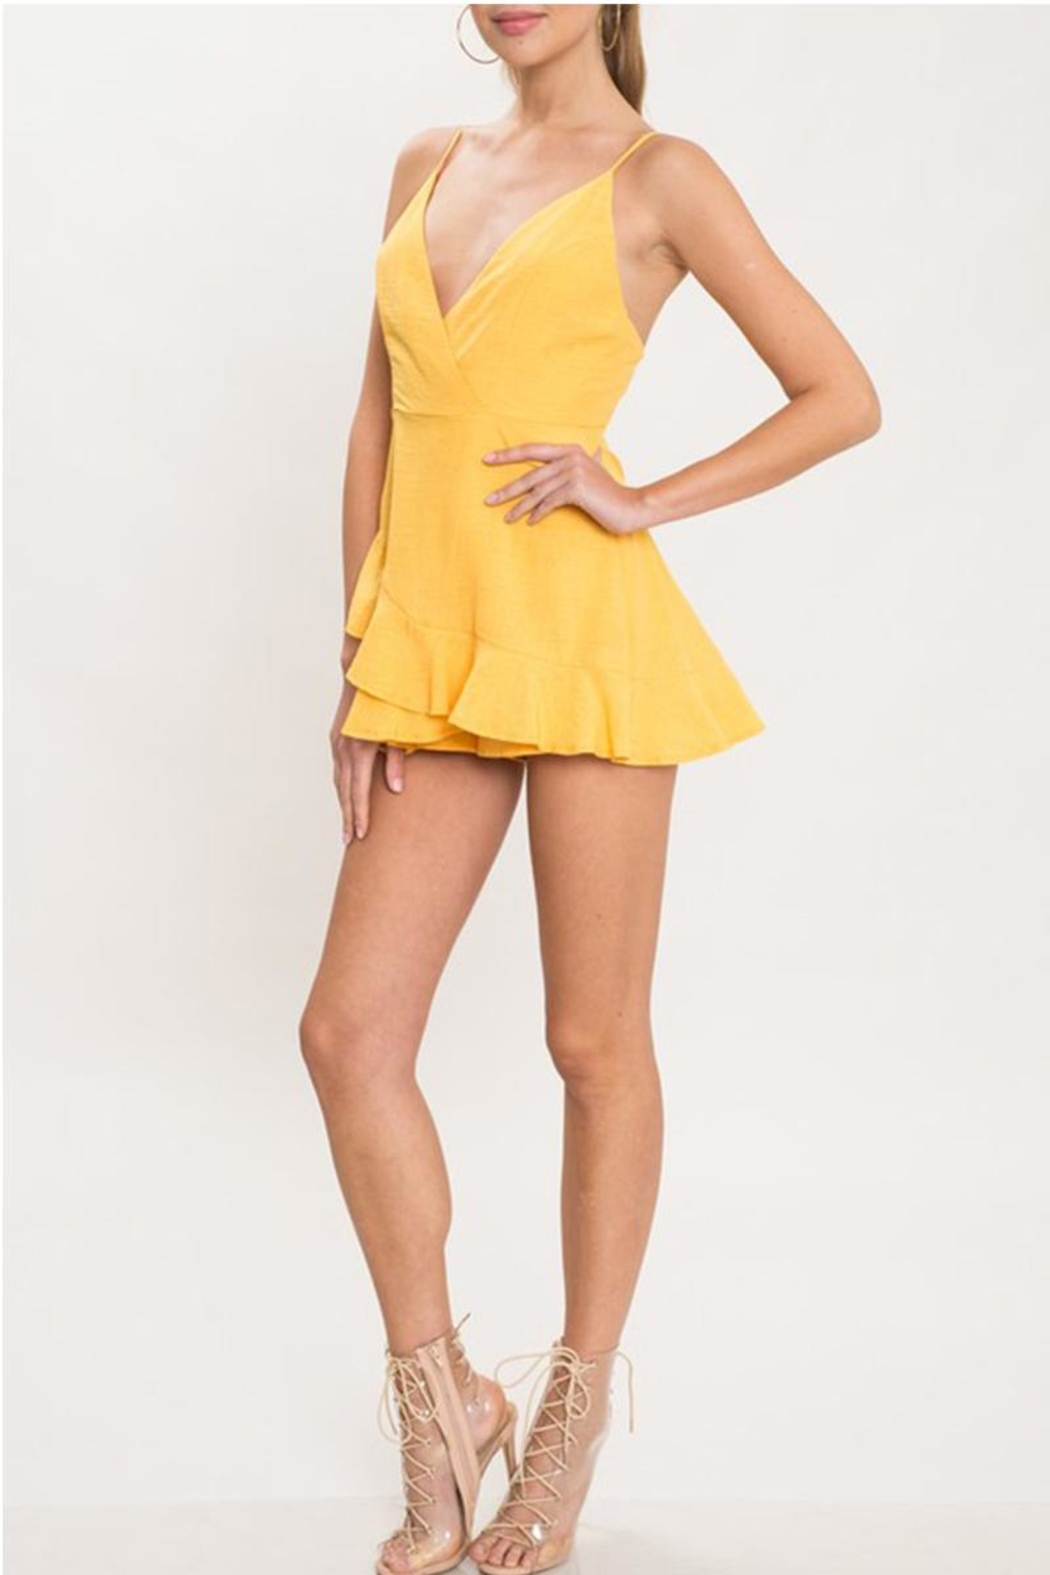 L'atiste Yellow Shift Romper - Front Full Image